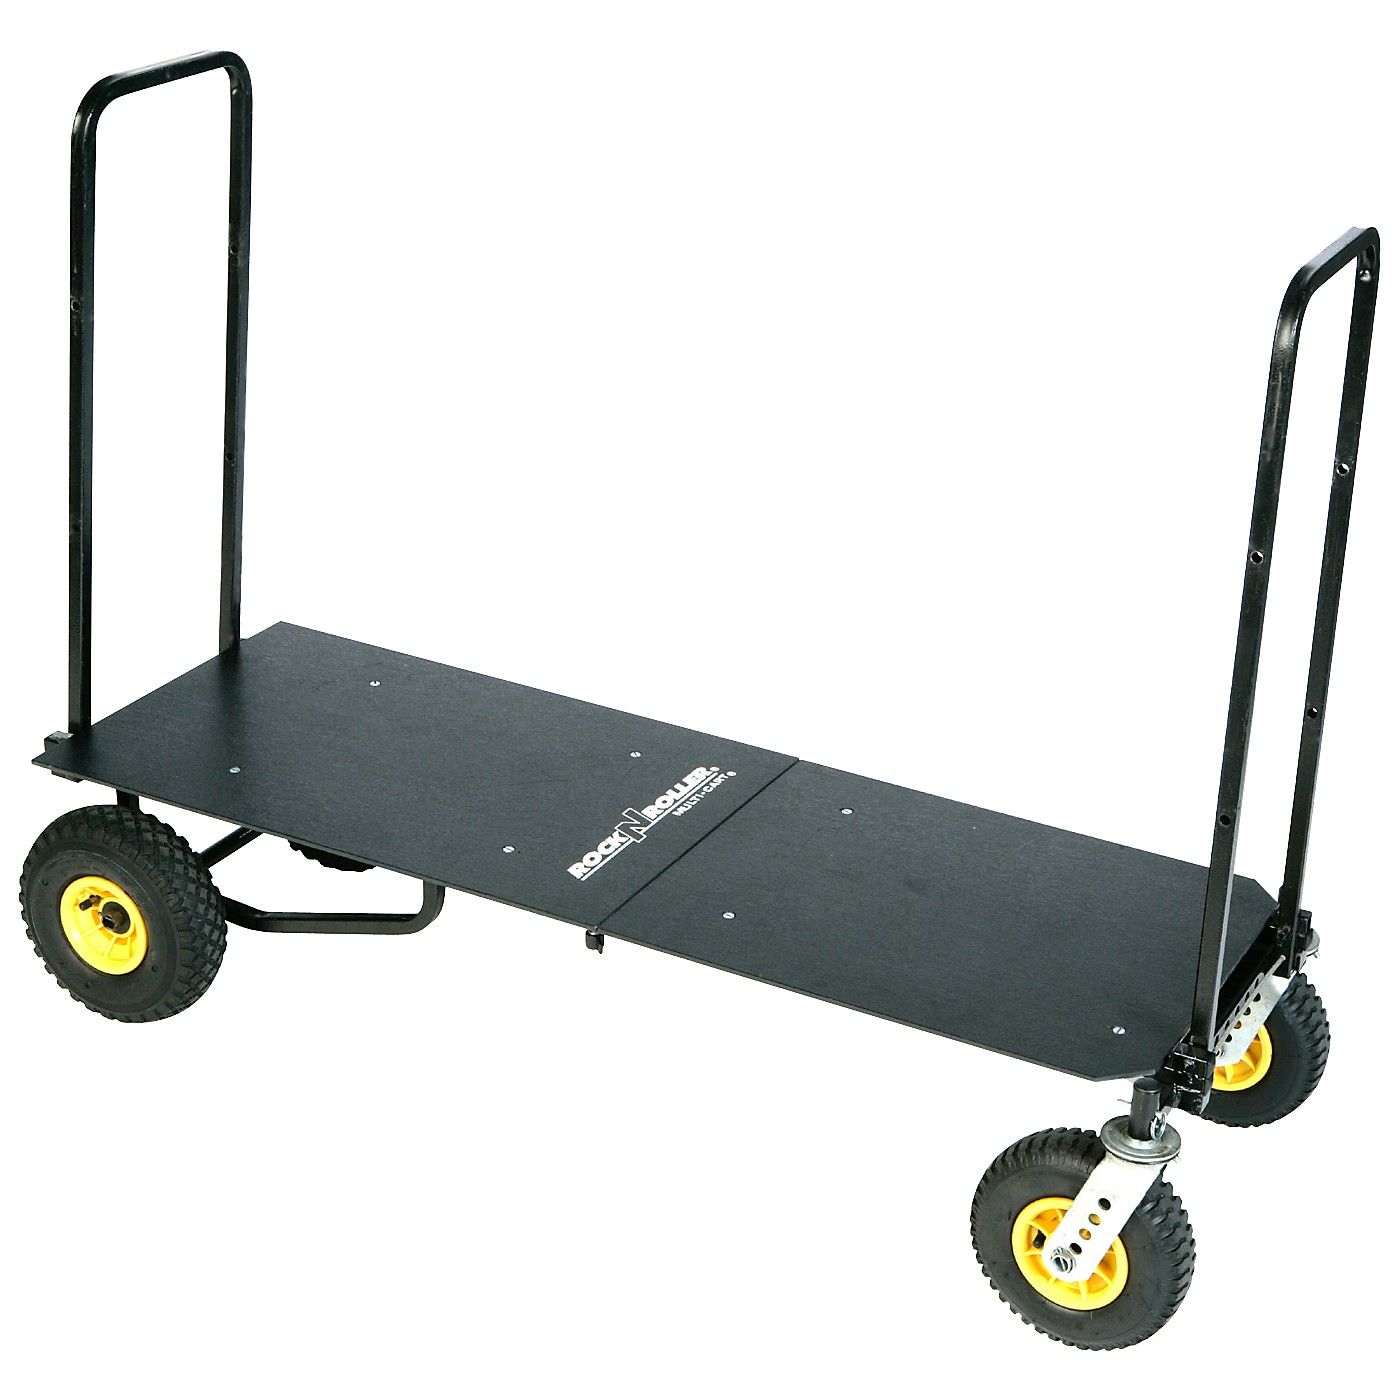 Rock N Roller R12 Multi-Cart 8-in-1 Equipment Transporter Cart With Deck thumbnail